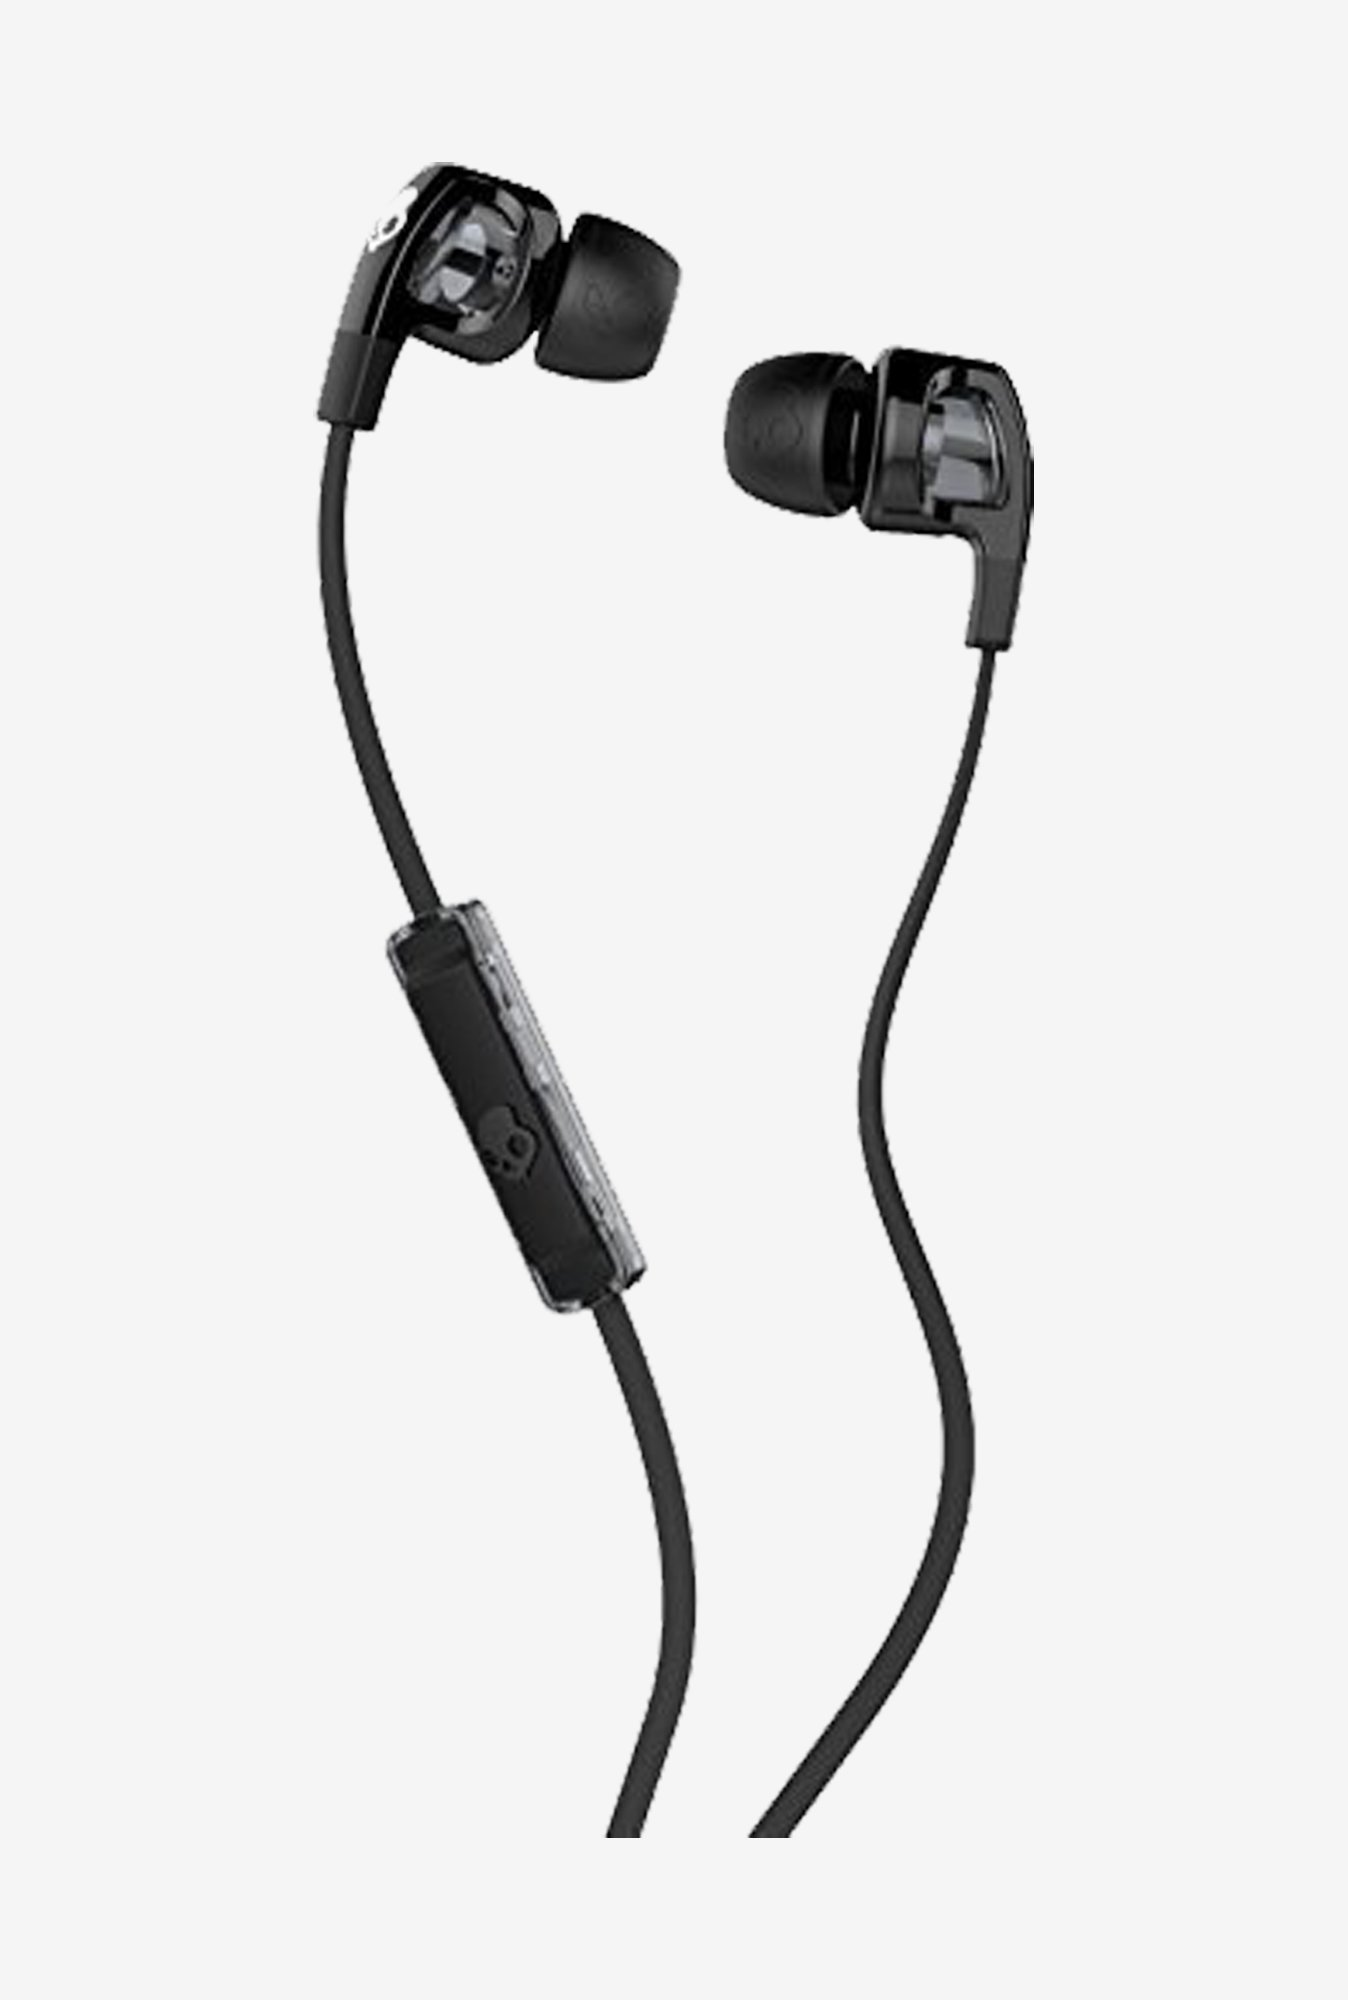 Skullcandy S2PGFY-003 Smokin Buds 2 Headphone (Black)